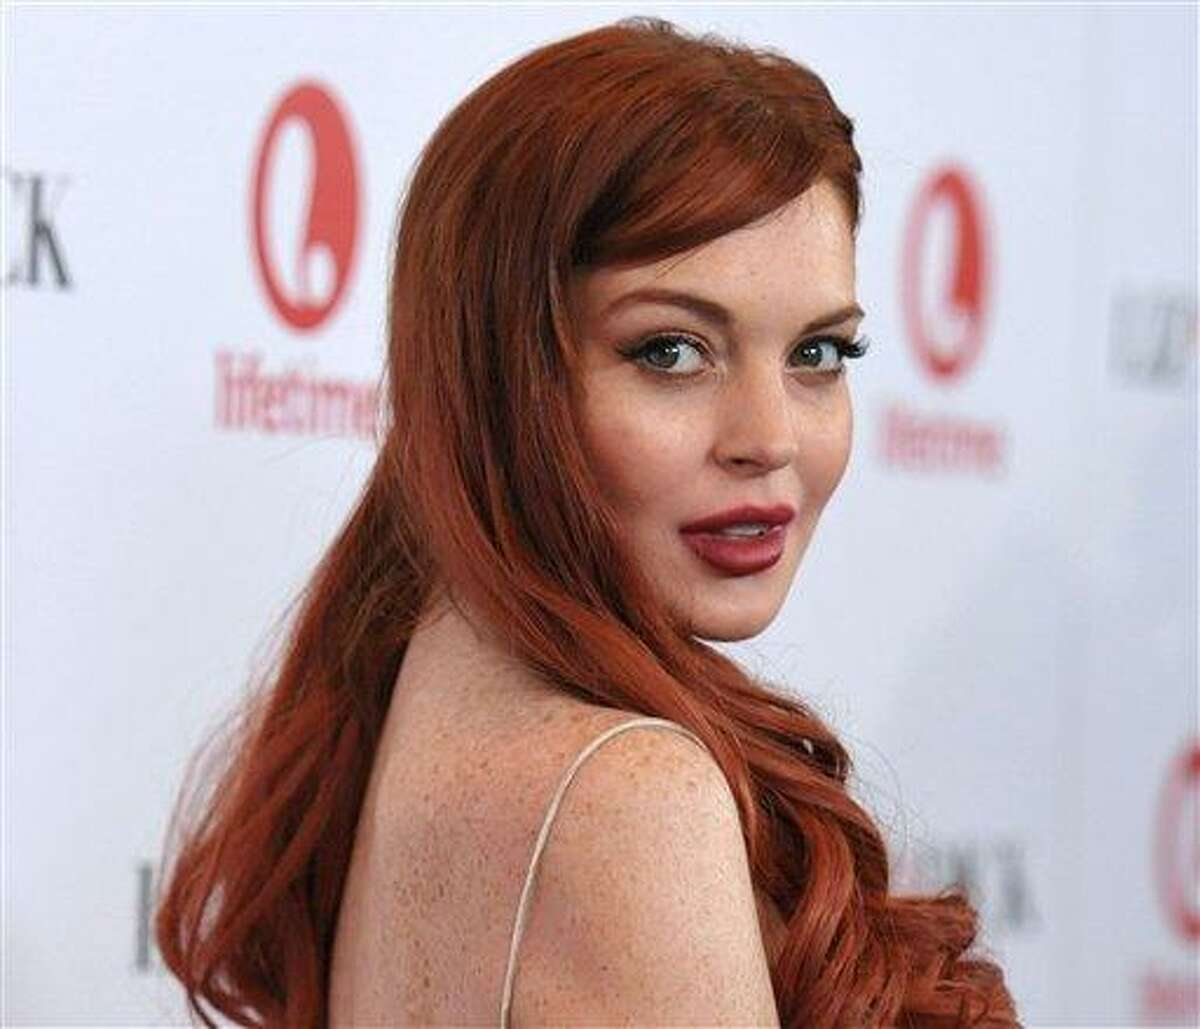 Lindsay Lohan attends a dinner celebrating the premiere of